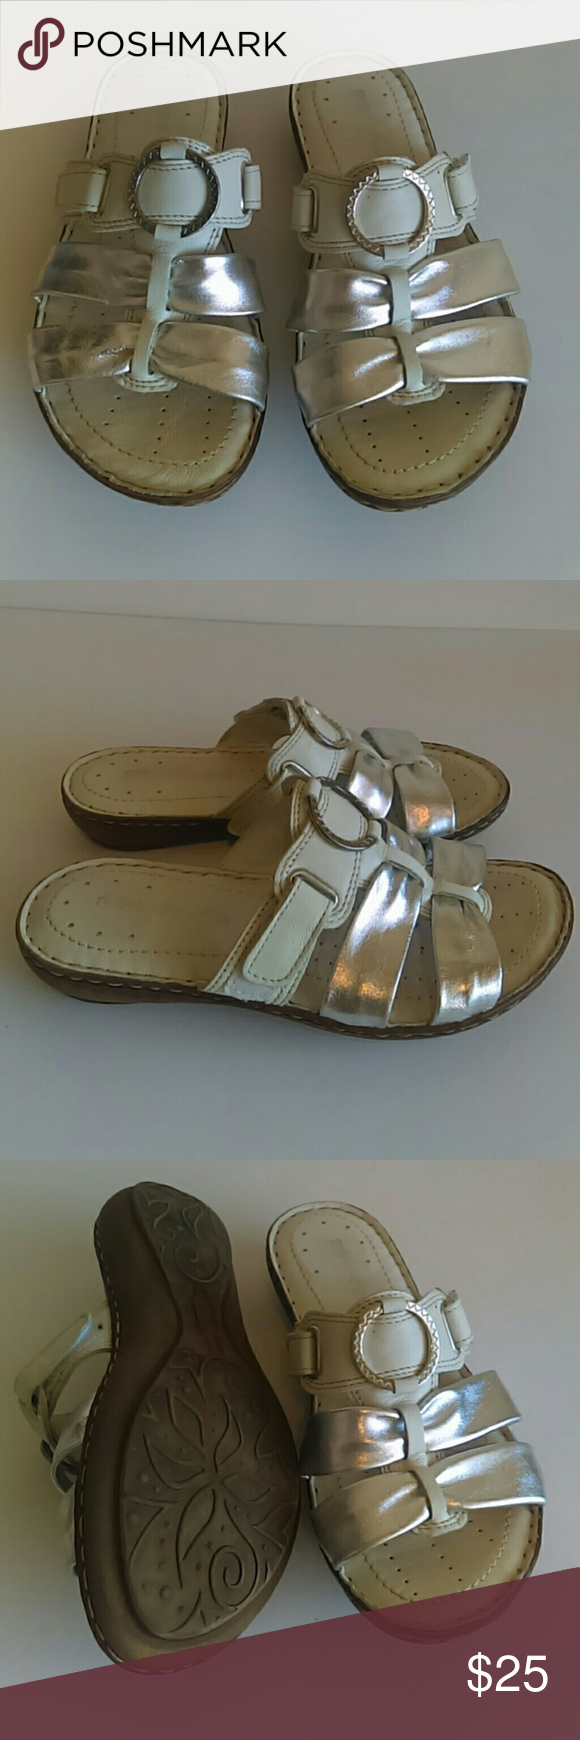 955aa66e7b7 Relaxshoe sandals Very comfortable excellent condition Relaxshoe ...